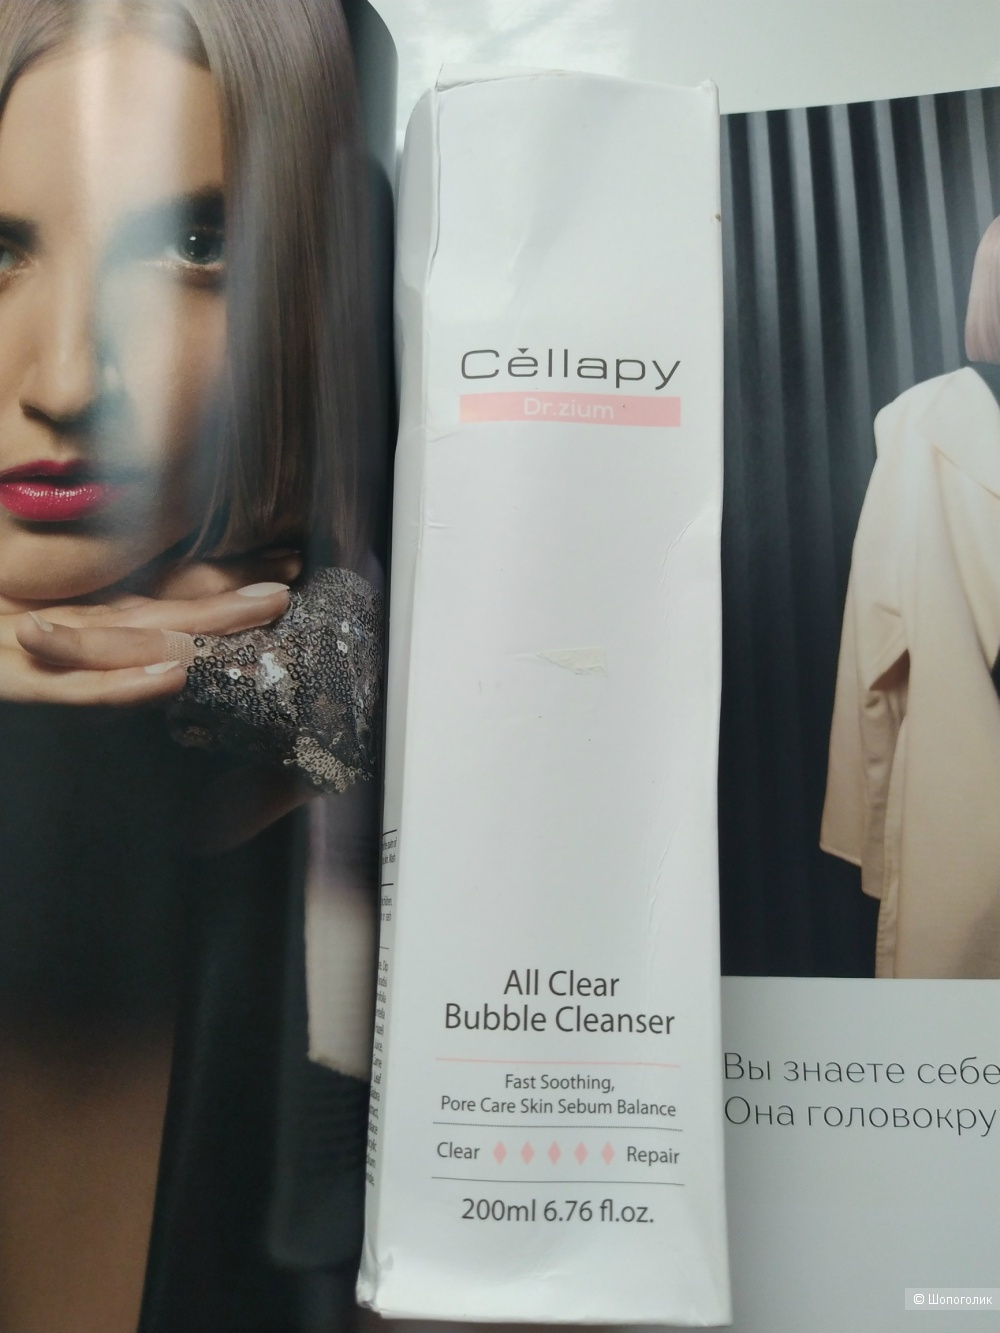 CELLAPY All Clear Bubble Cleanser 200ml,